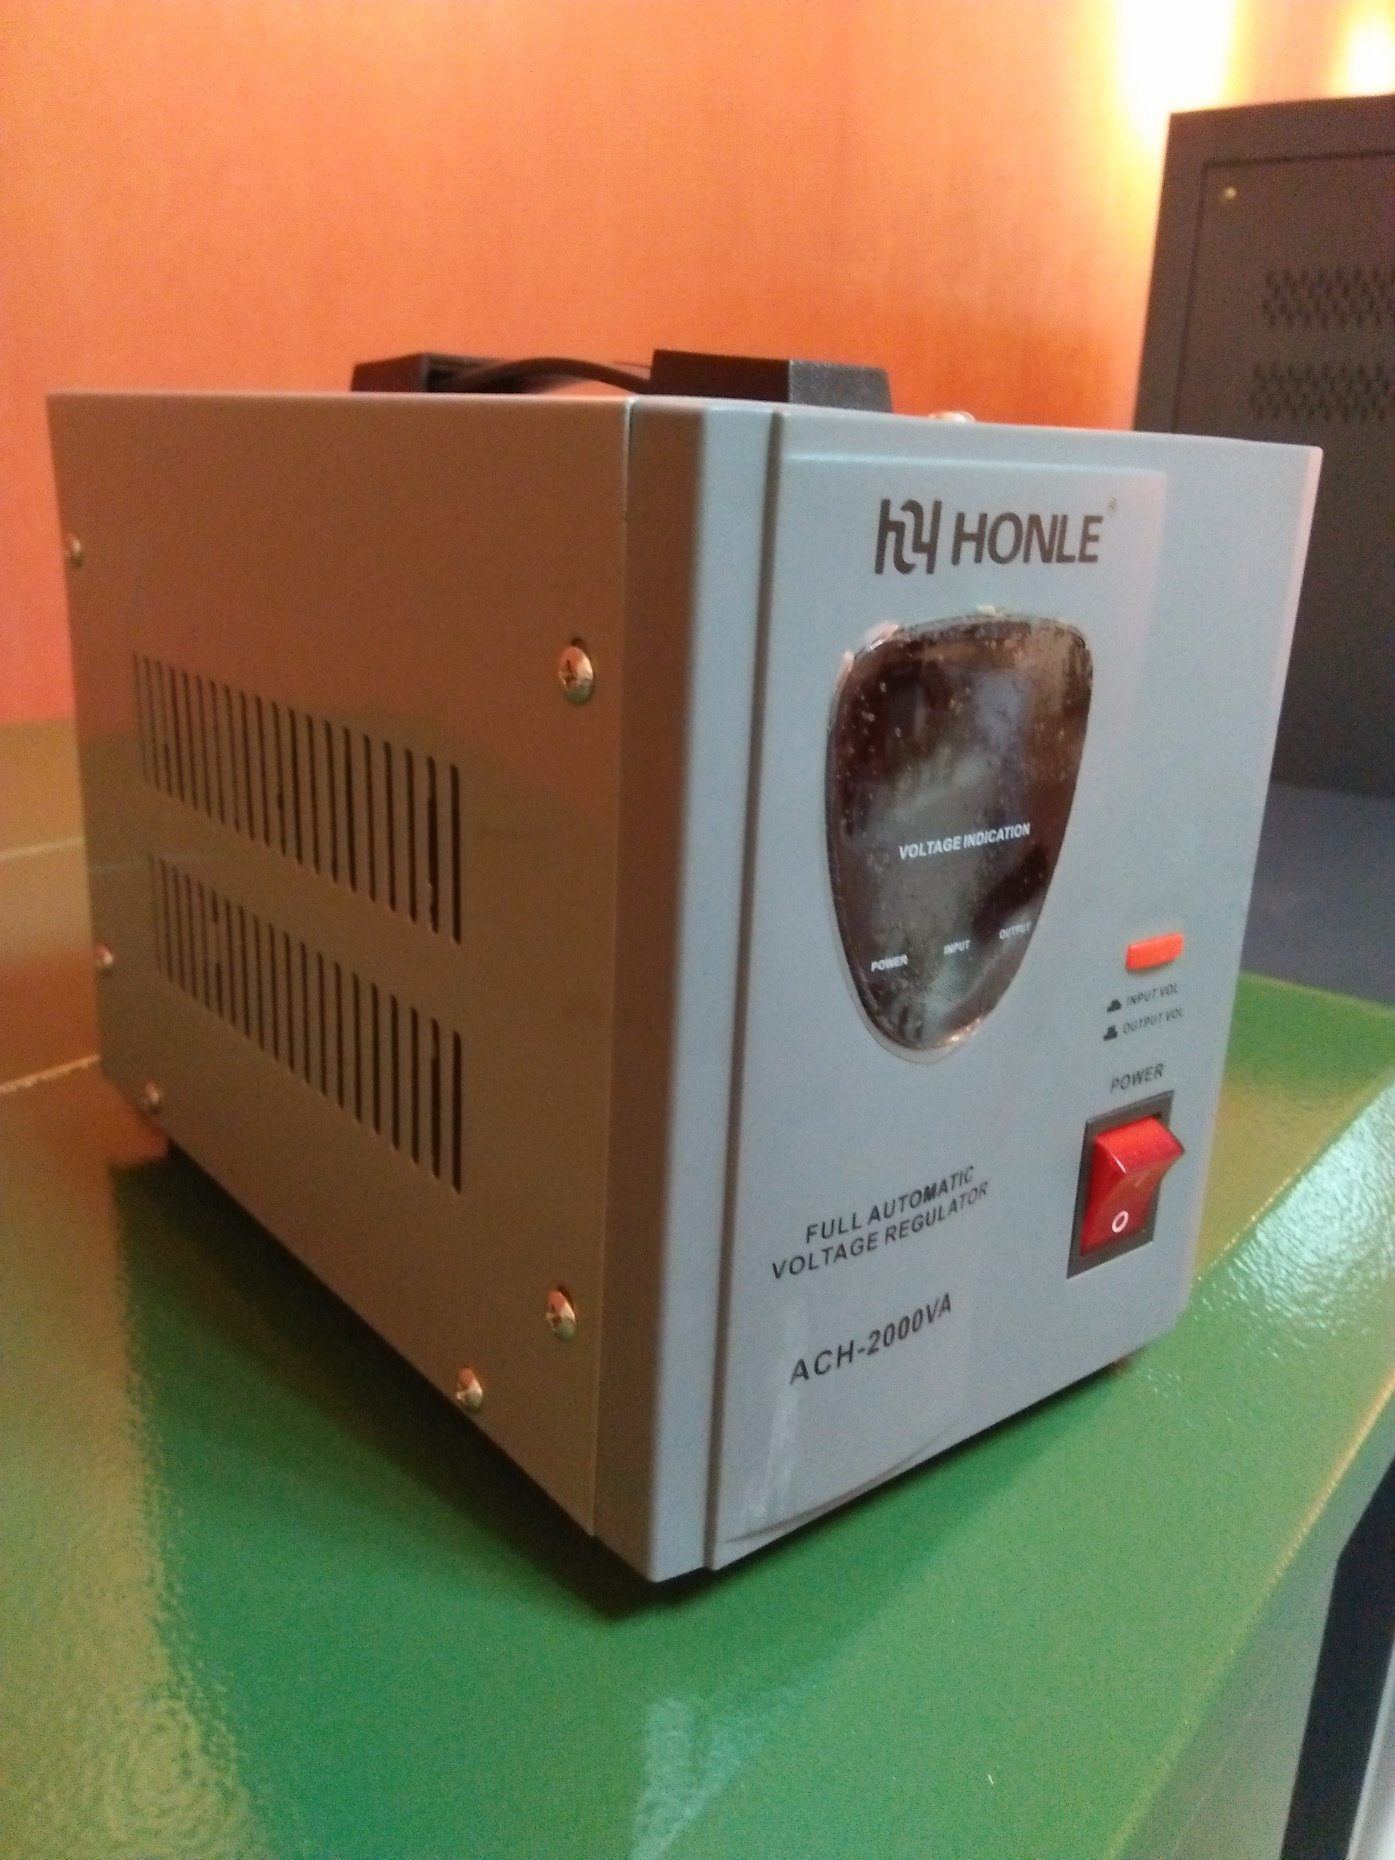 Ach Series Relay Type AC Home Used Voltage Stabilizer